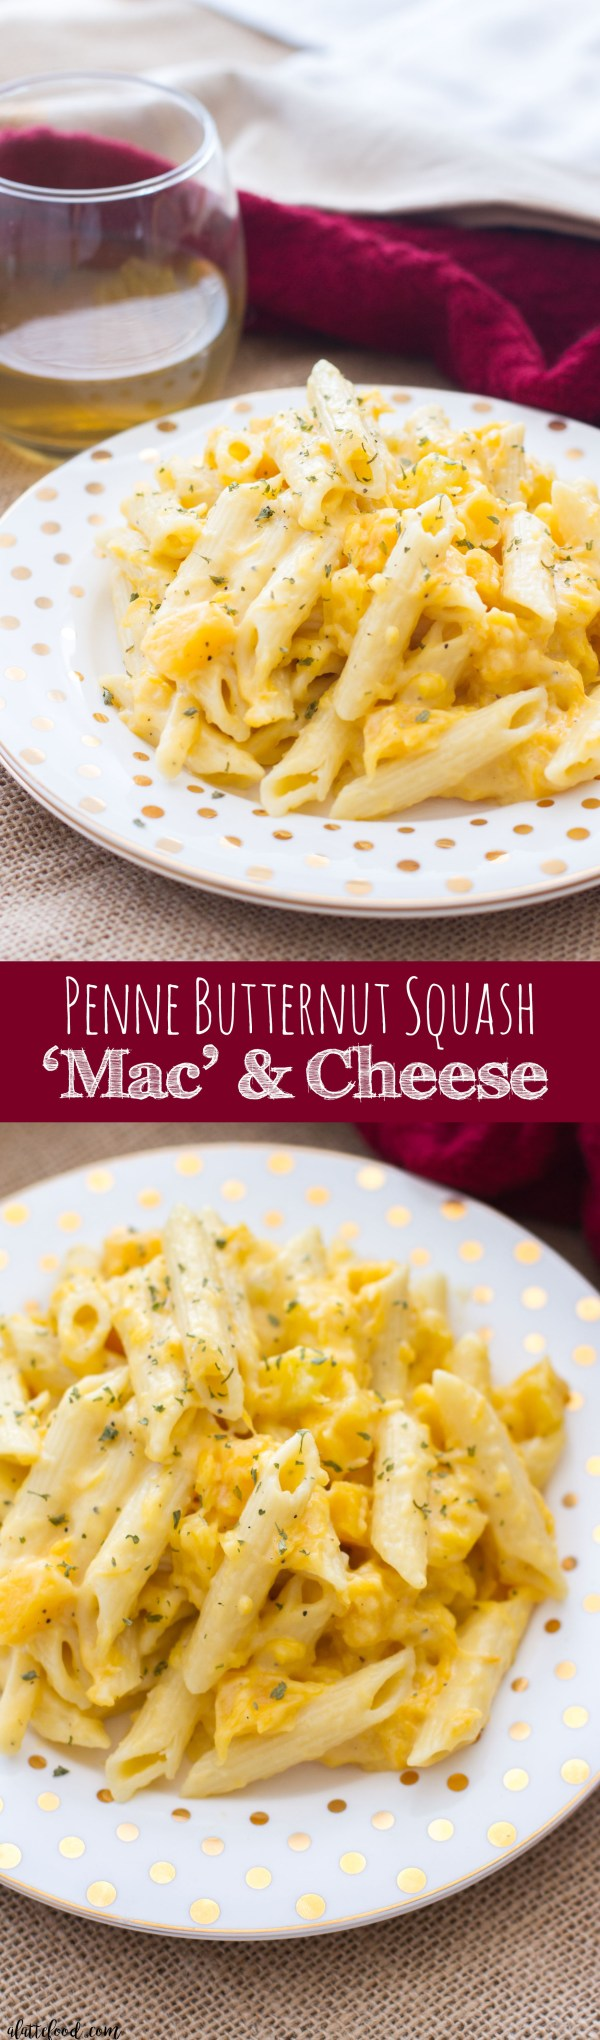 This easy stovetop mac and cheese recipe uses Barilla Penne Pasta, butternut squash, and sharp cheddar cheese to give the classic comfort food a fall dinner twist!